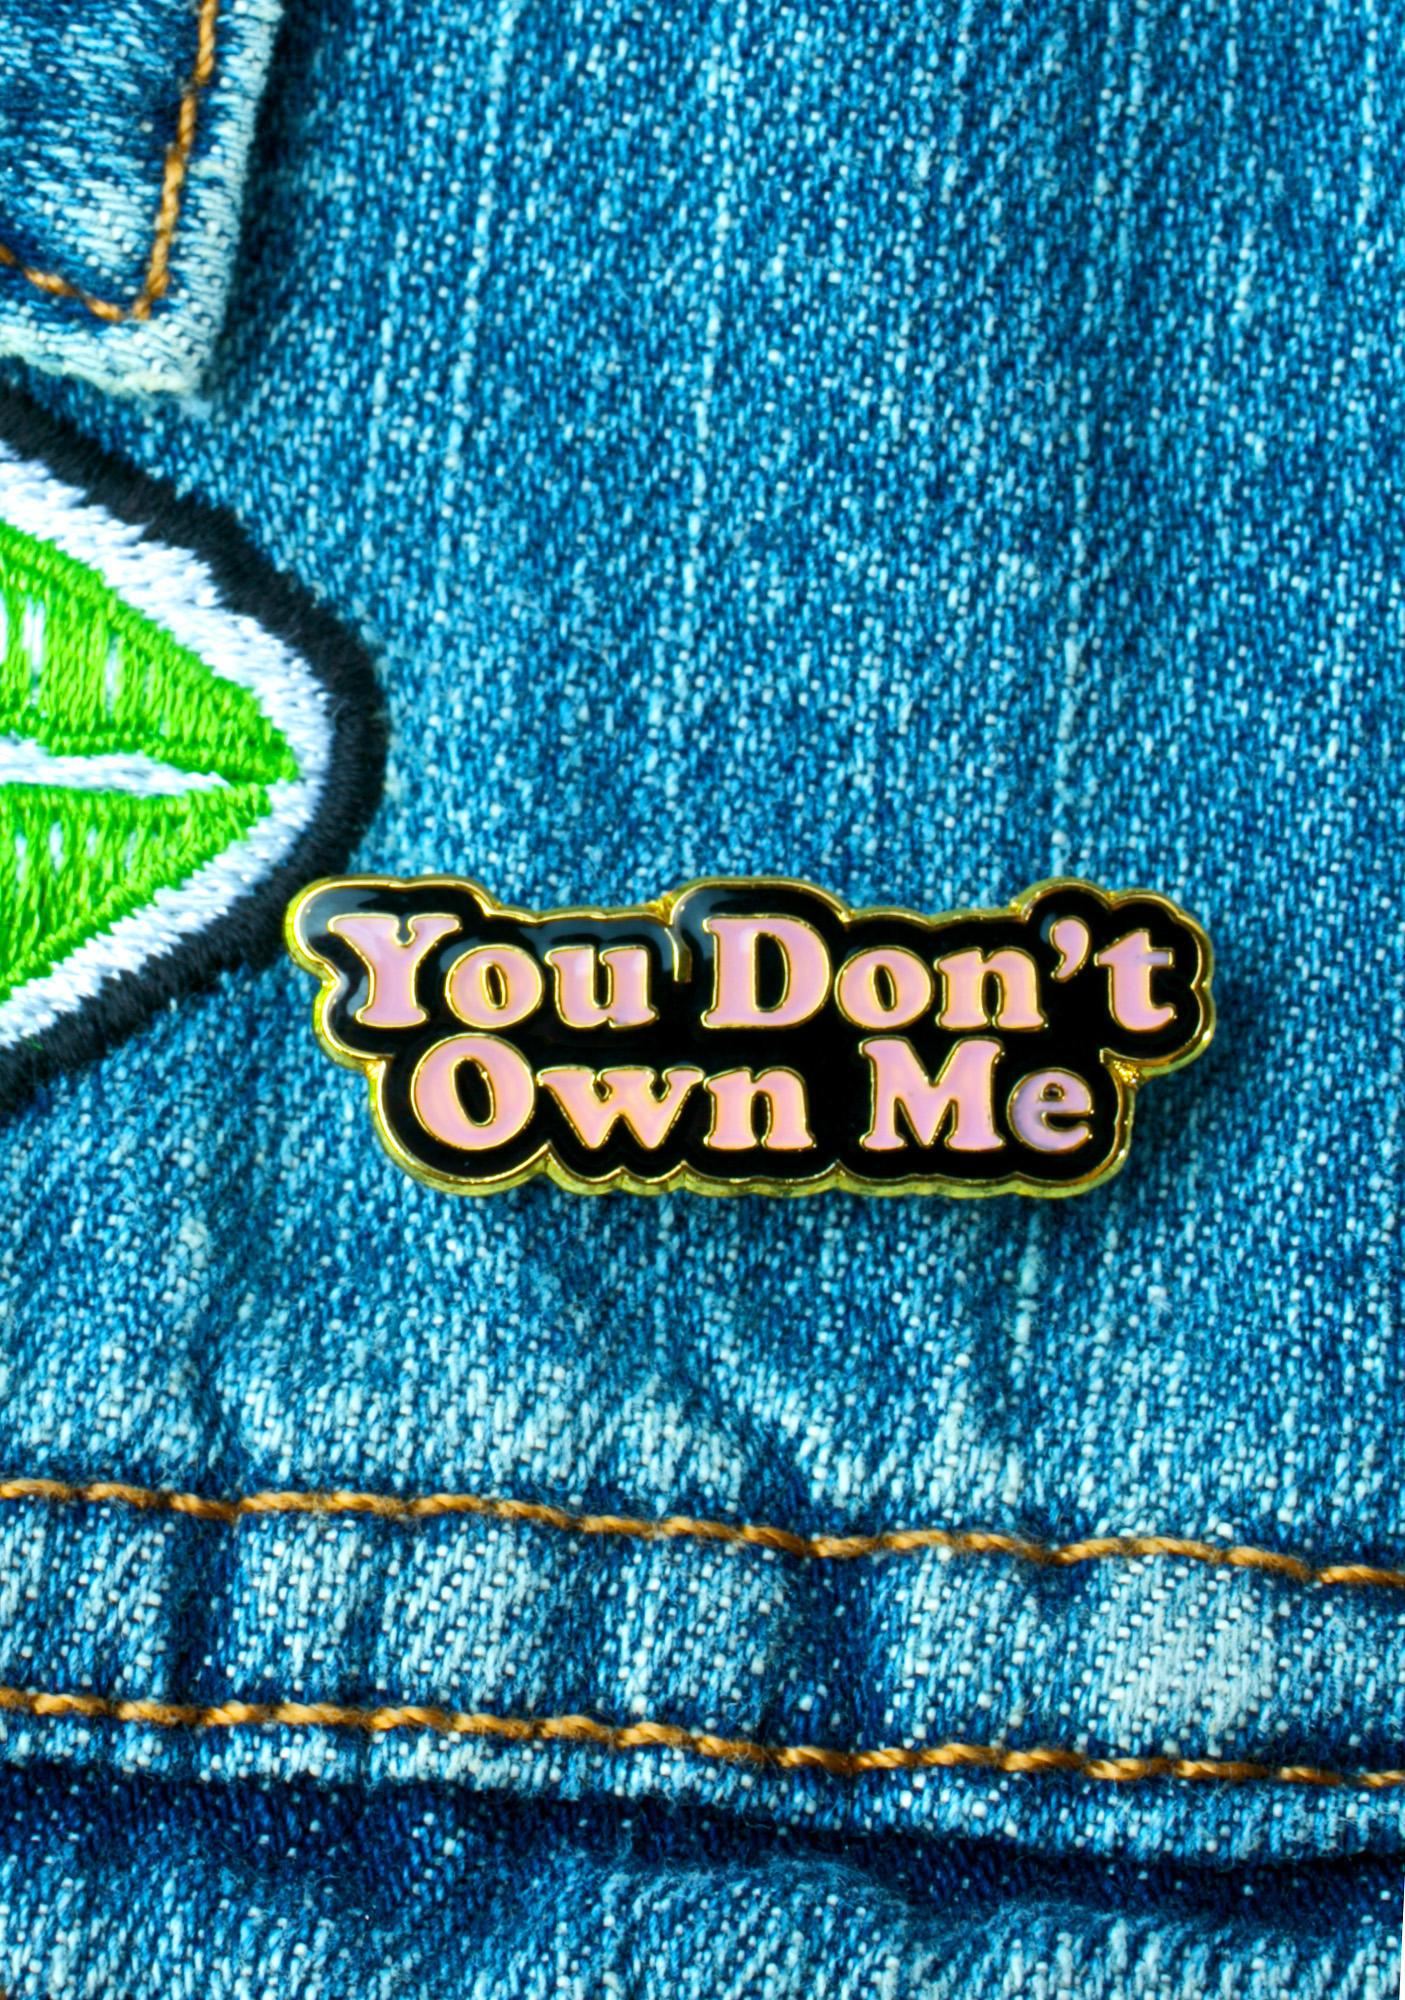 Yvng Pearl You Don't Own Me Pin